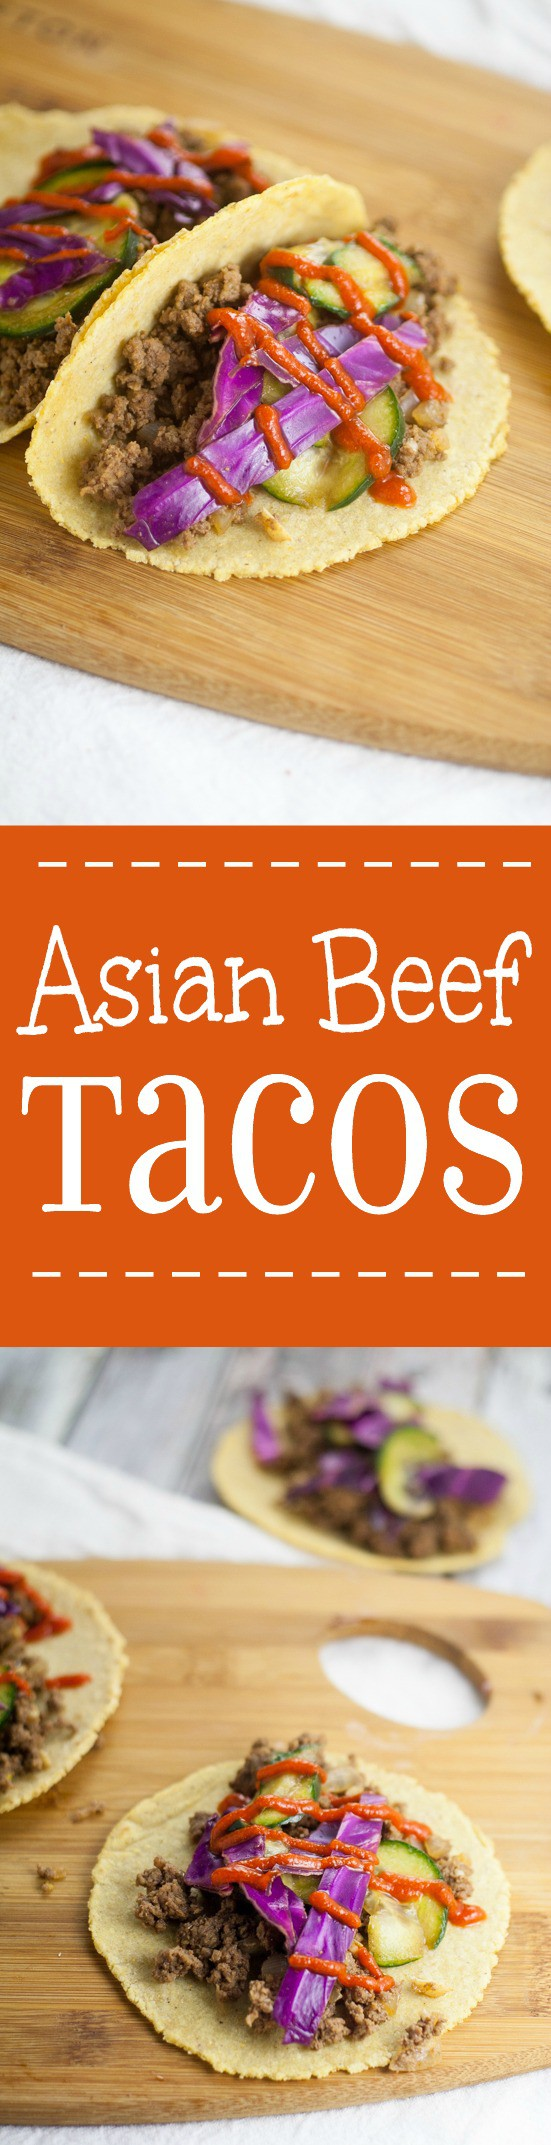 Asian Beef Tacos recipe with cucumber slaw -An Asian kick on your old family dinner favorite, these Asian Beef Tacos topped with cool sour cream, crisp cucumber slaw, and spicy Sriracha make taco night even more spectacular. Wow, the slaw on these tacos really makes it amazing!